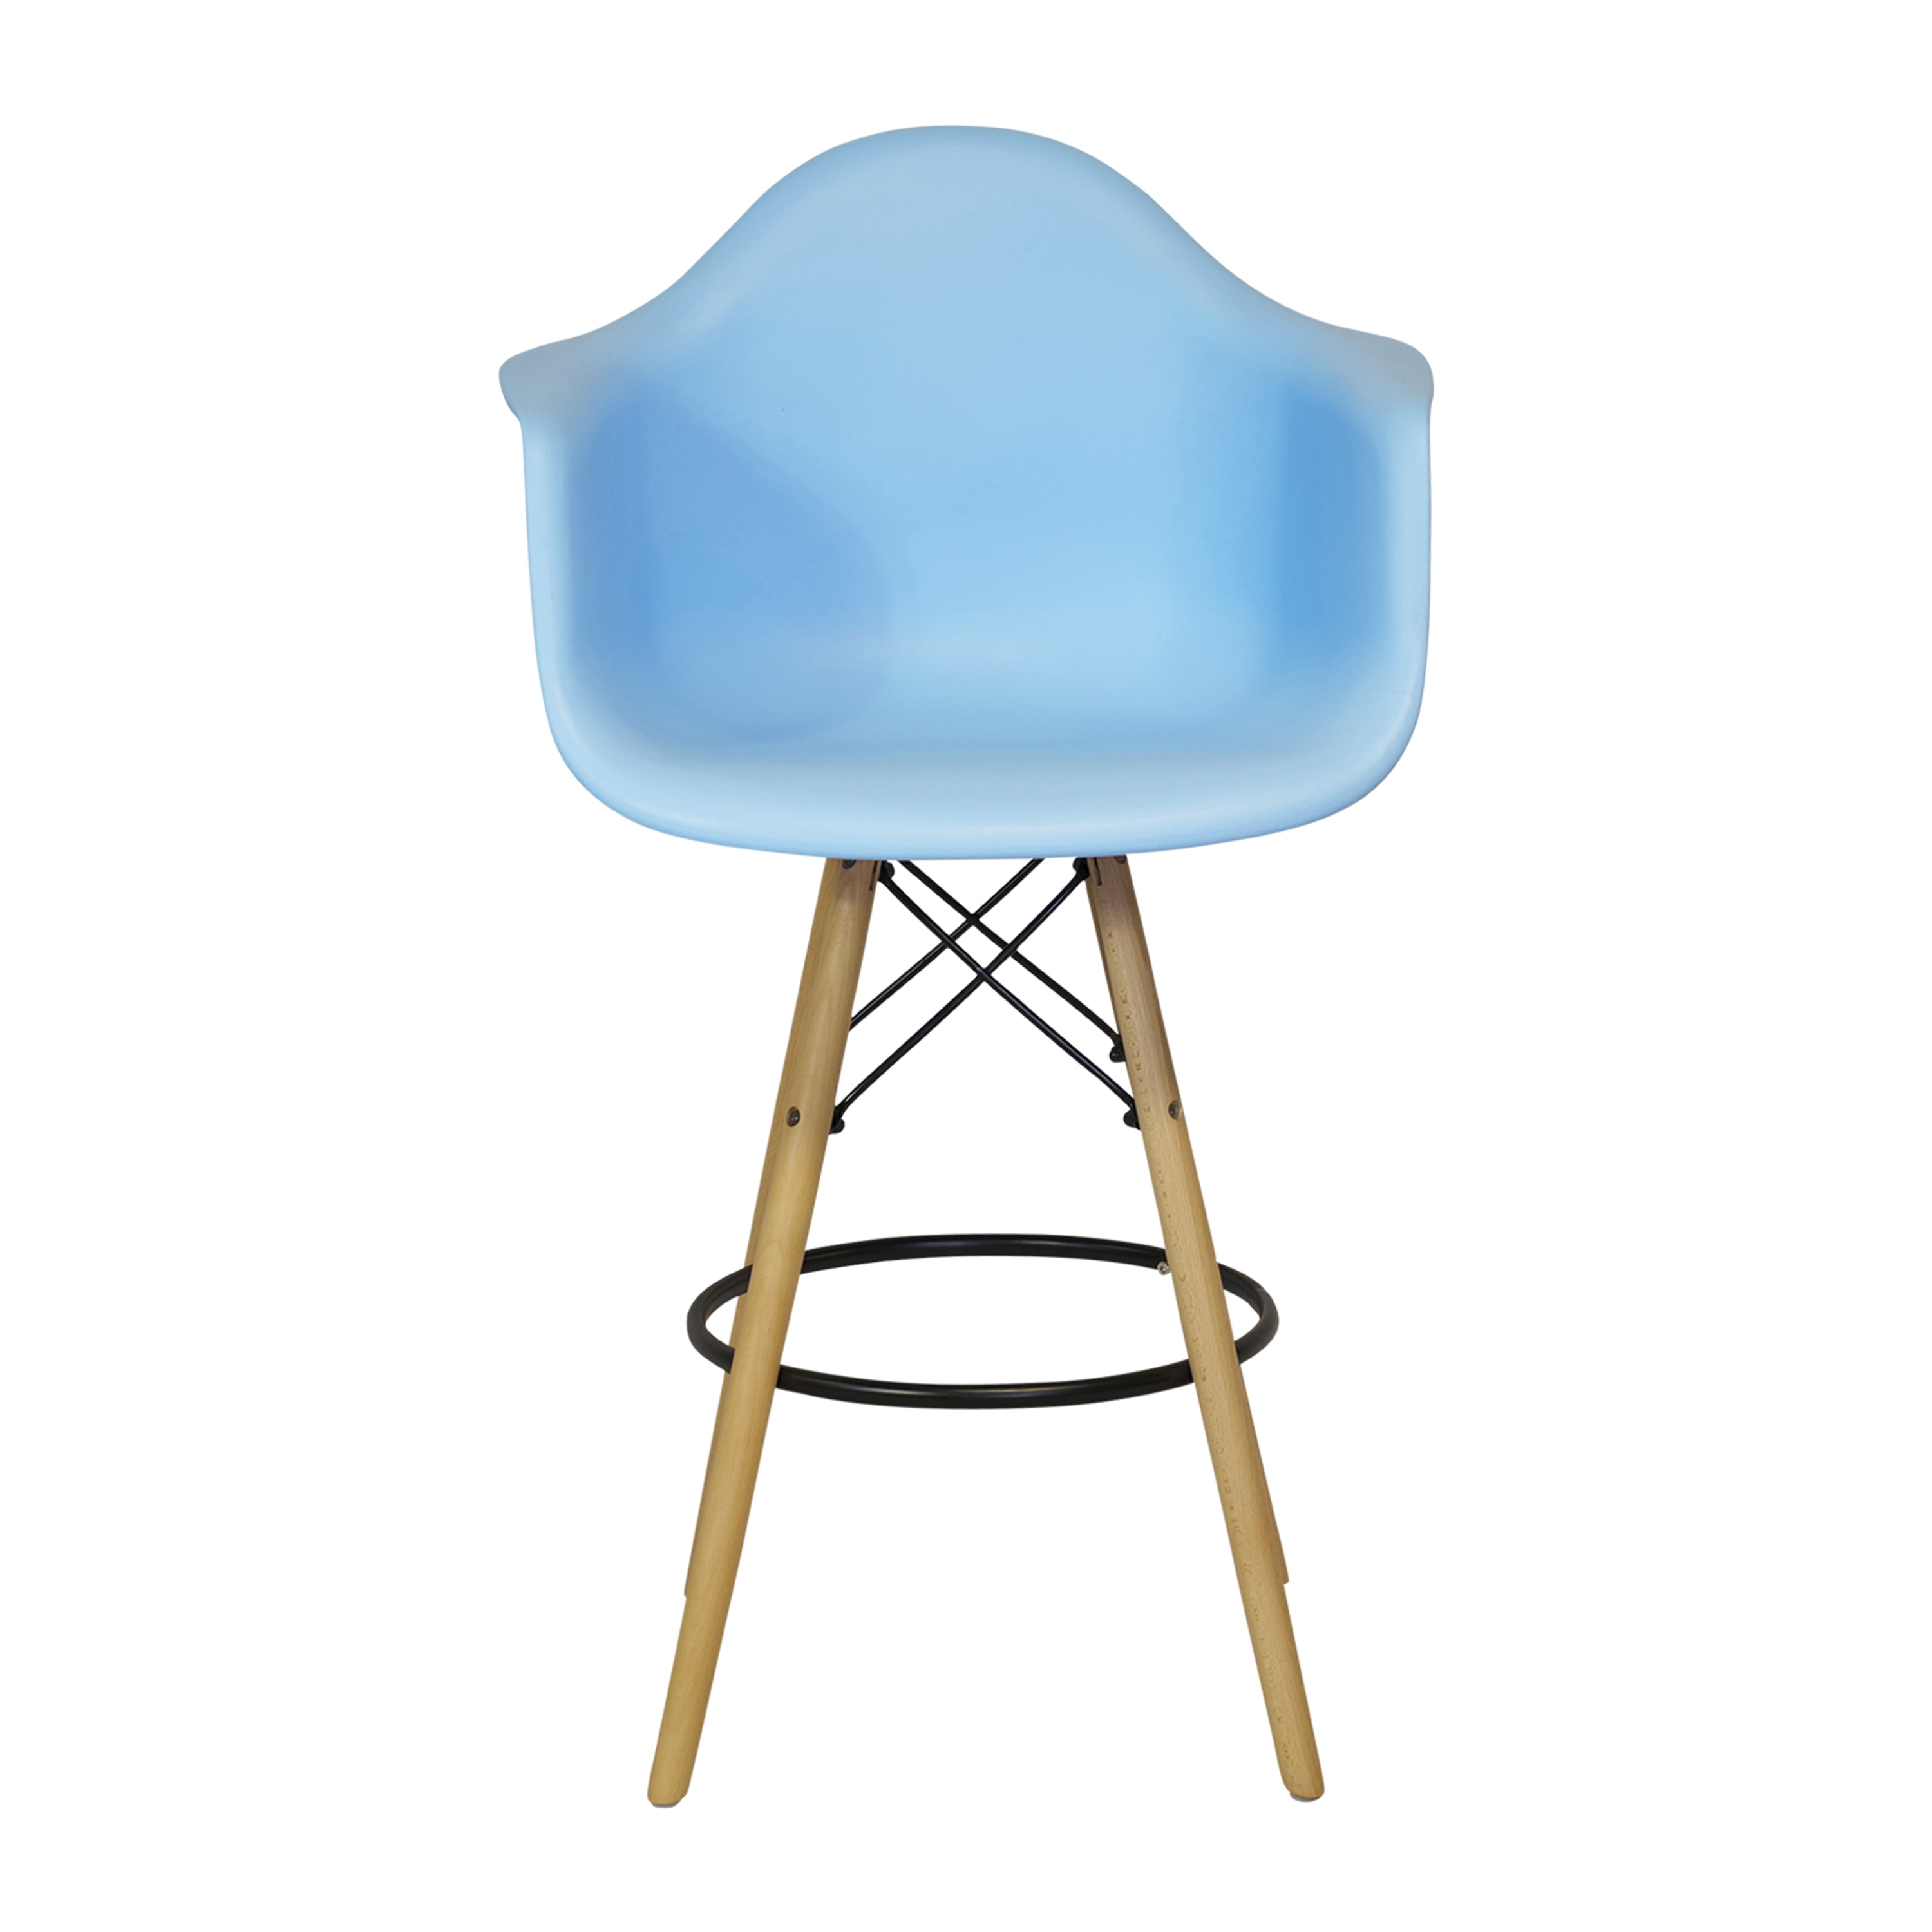 Shop Mid Century Modern Molded Plastic 26 Inch Armchair/ Counter Stool    Free Shipping Today   Overstock.com   11750051